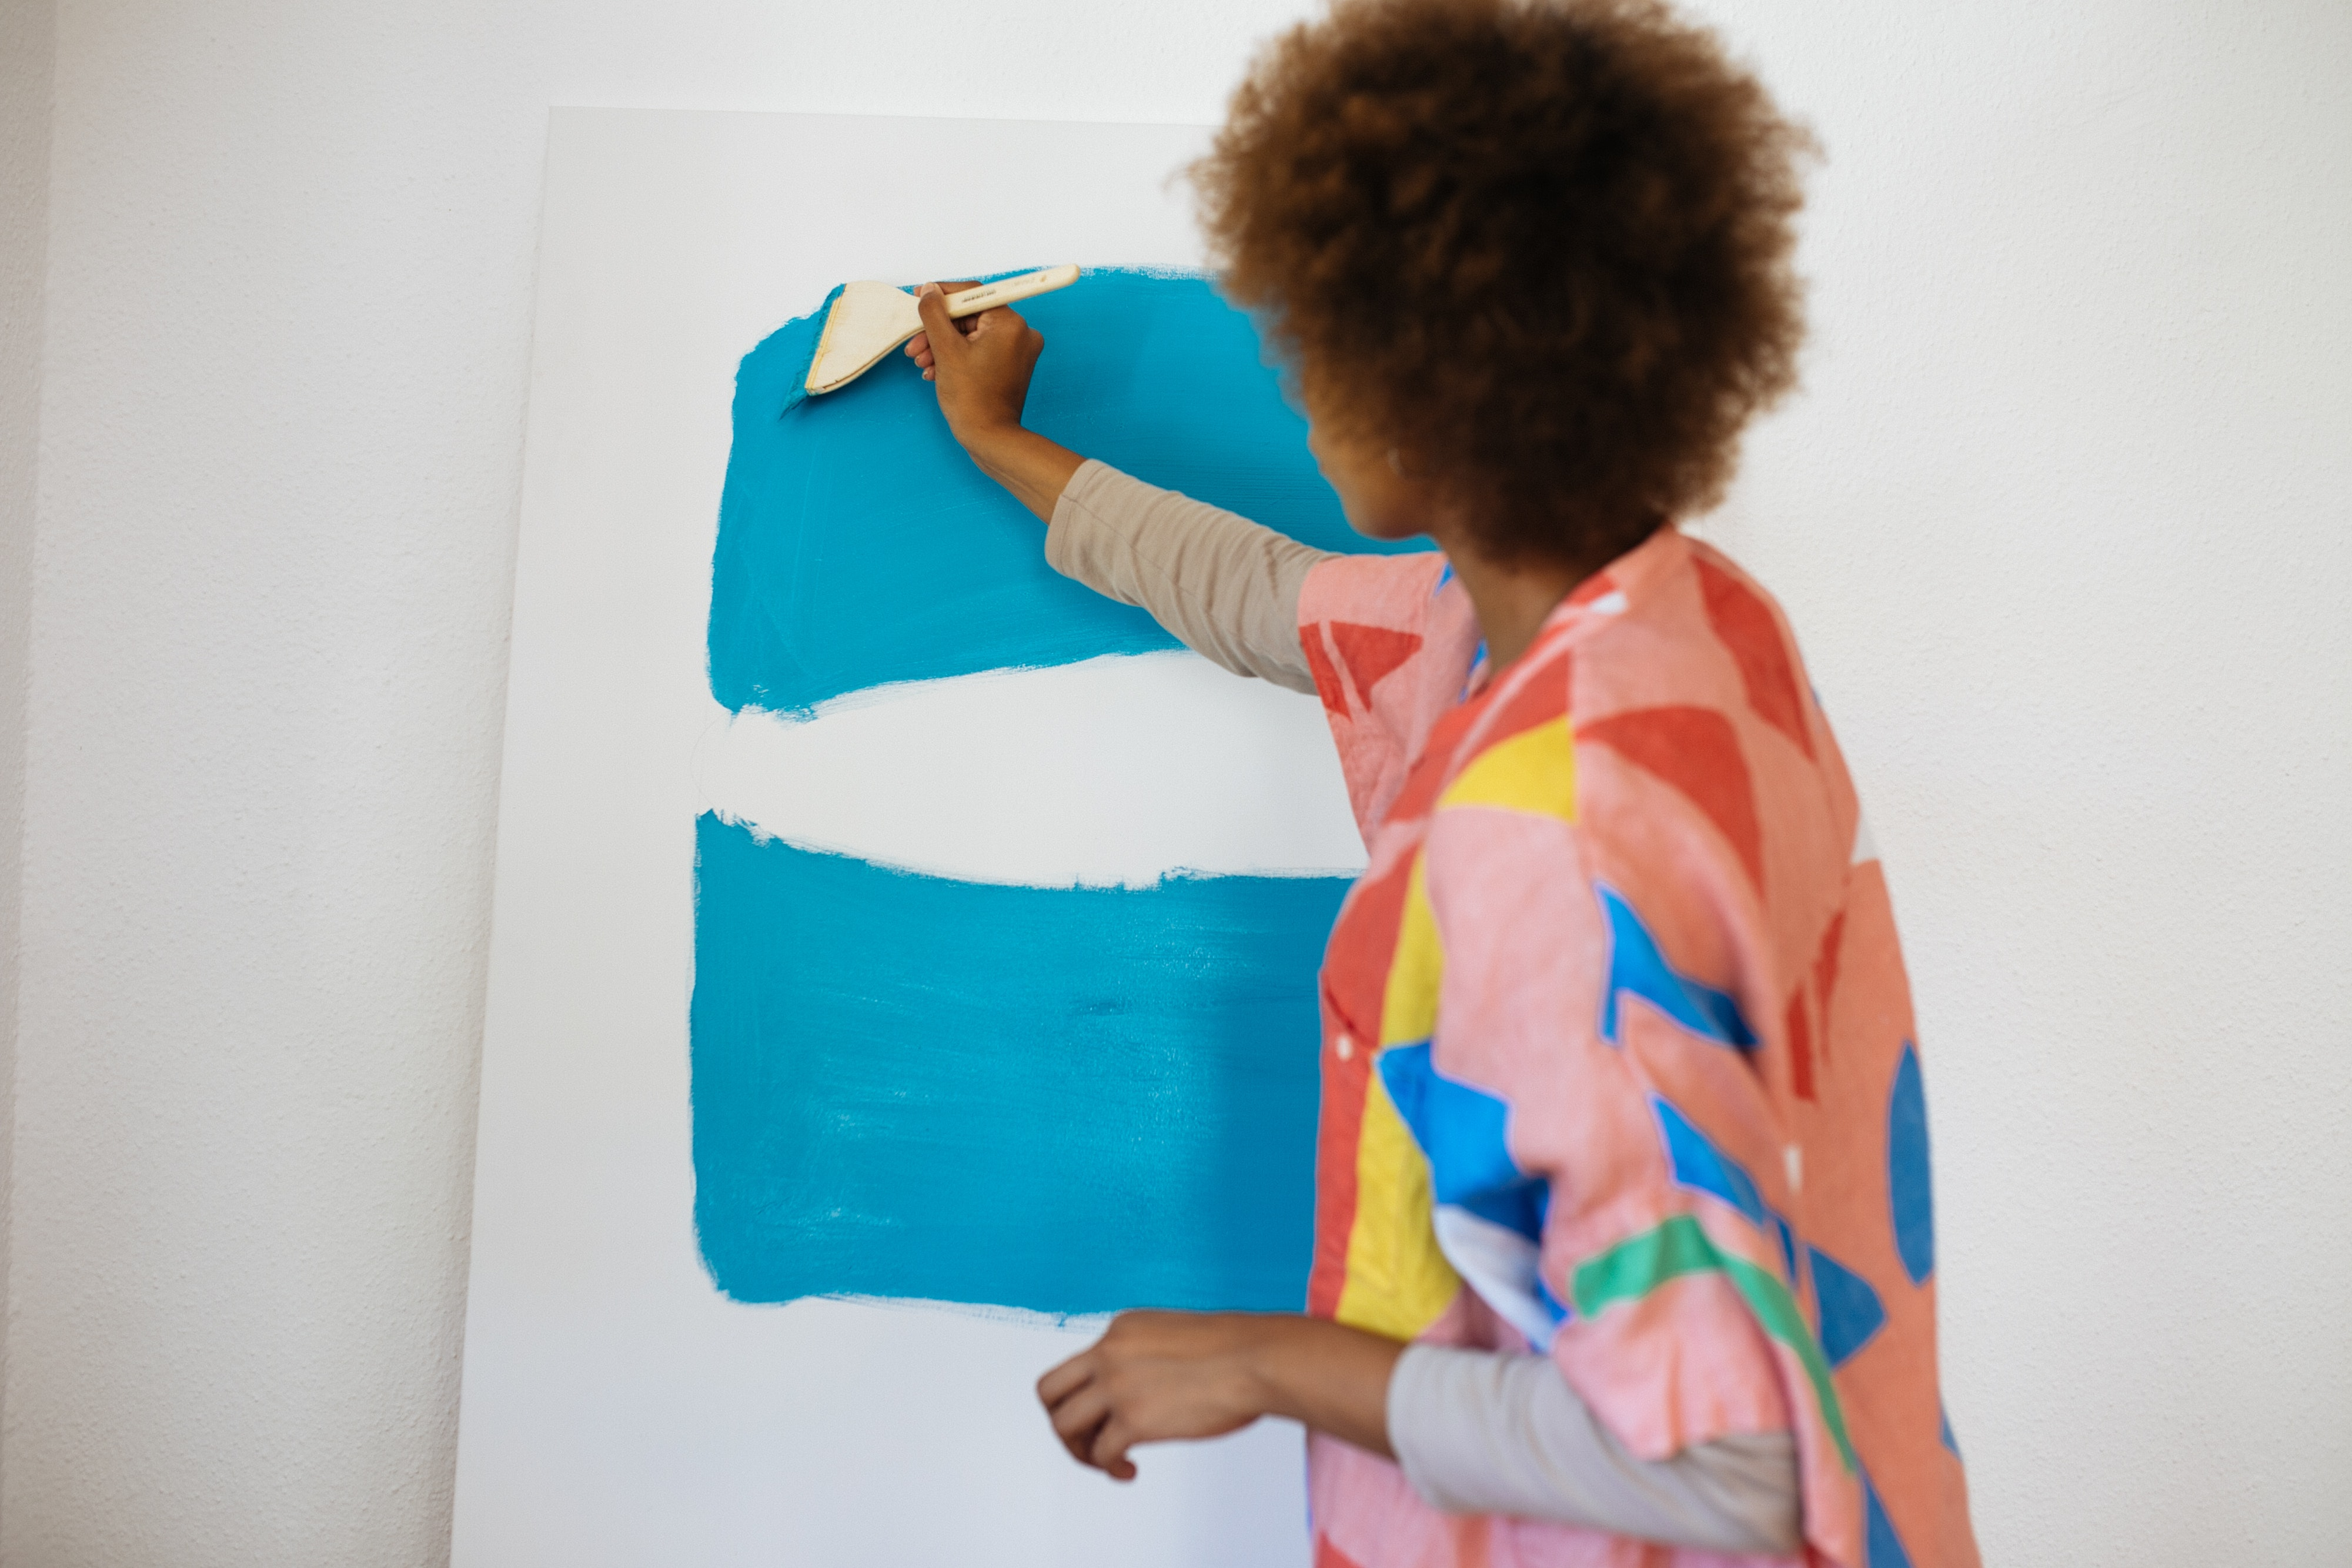 Black woman painting a white canvas with minimalist blocks of turquoise